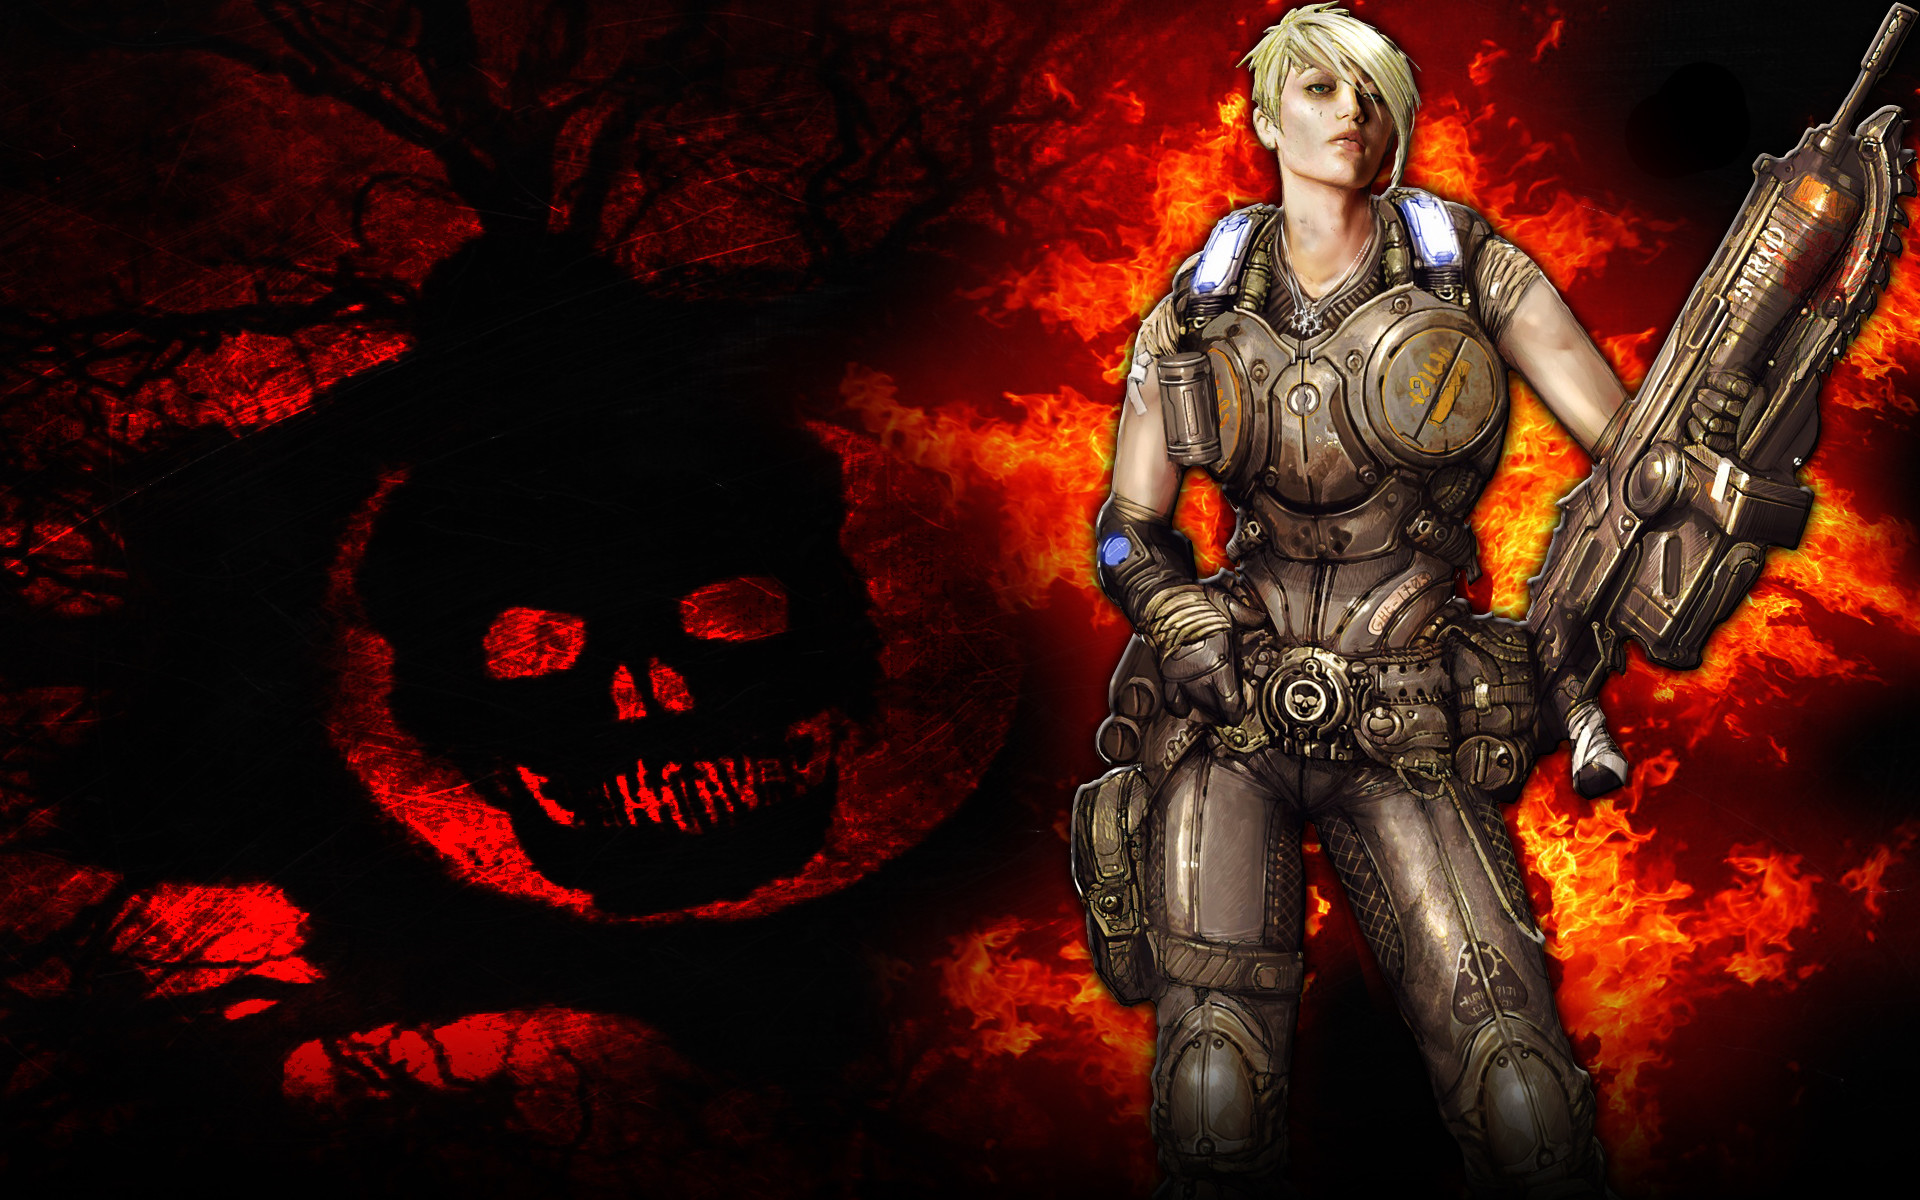 1920x1200 Gears of War 3 Wallpaper 25 - 1920 X 1200